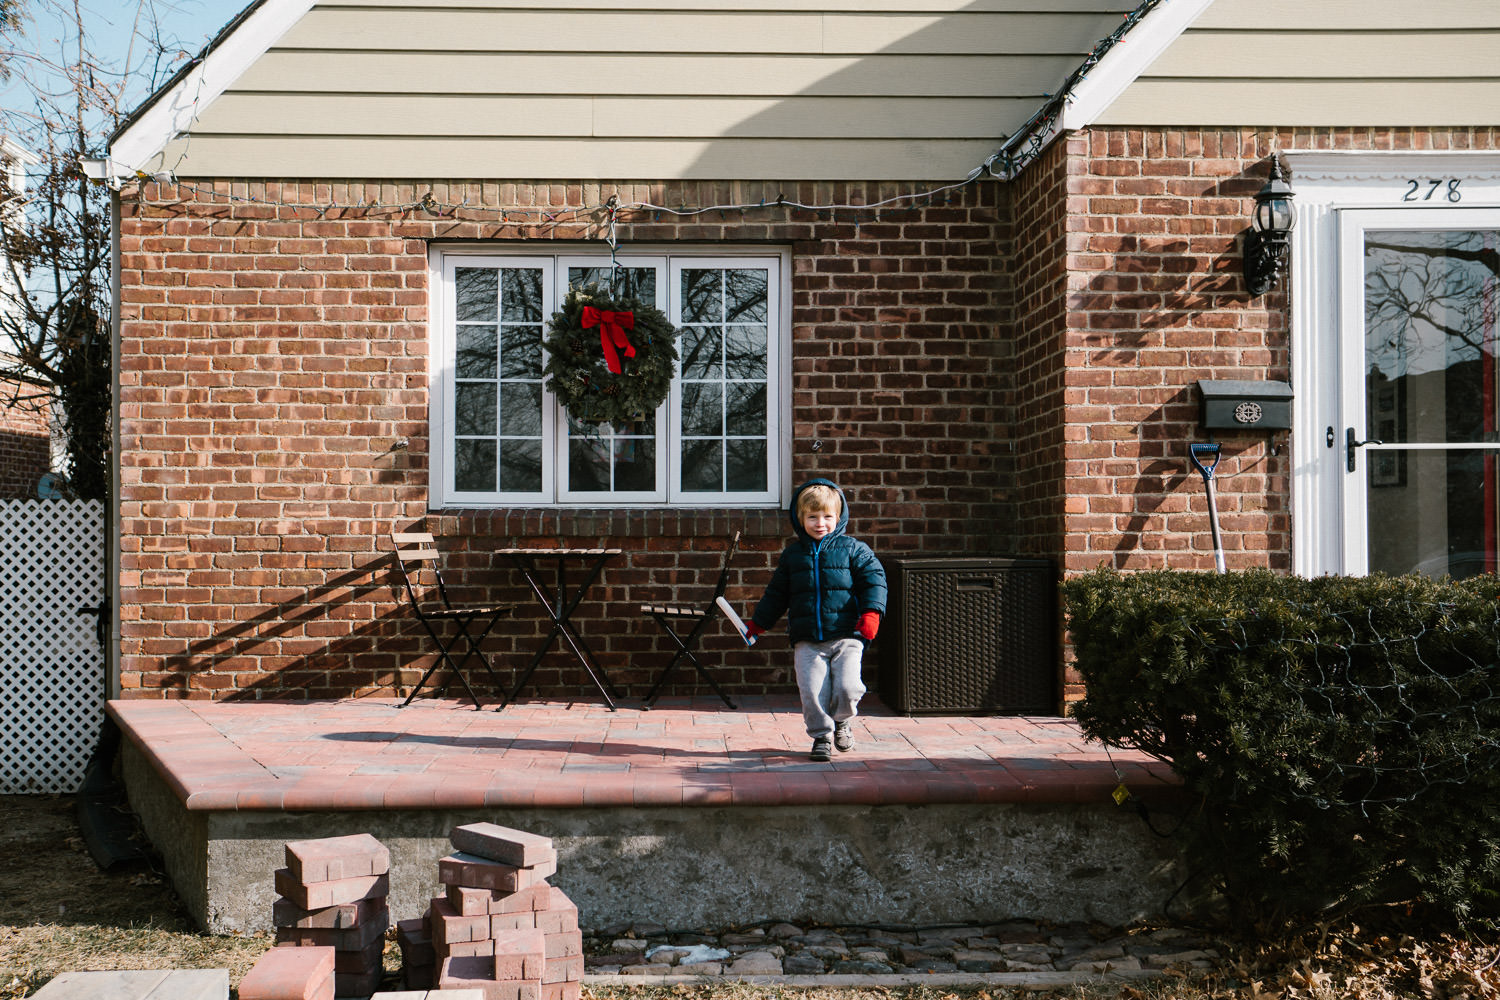 A little boy stands on his porch holding a stomp rocket.